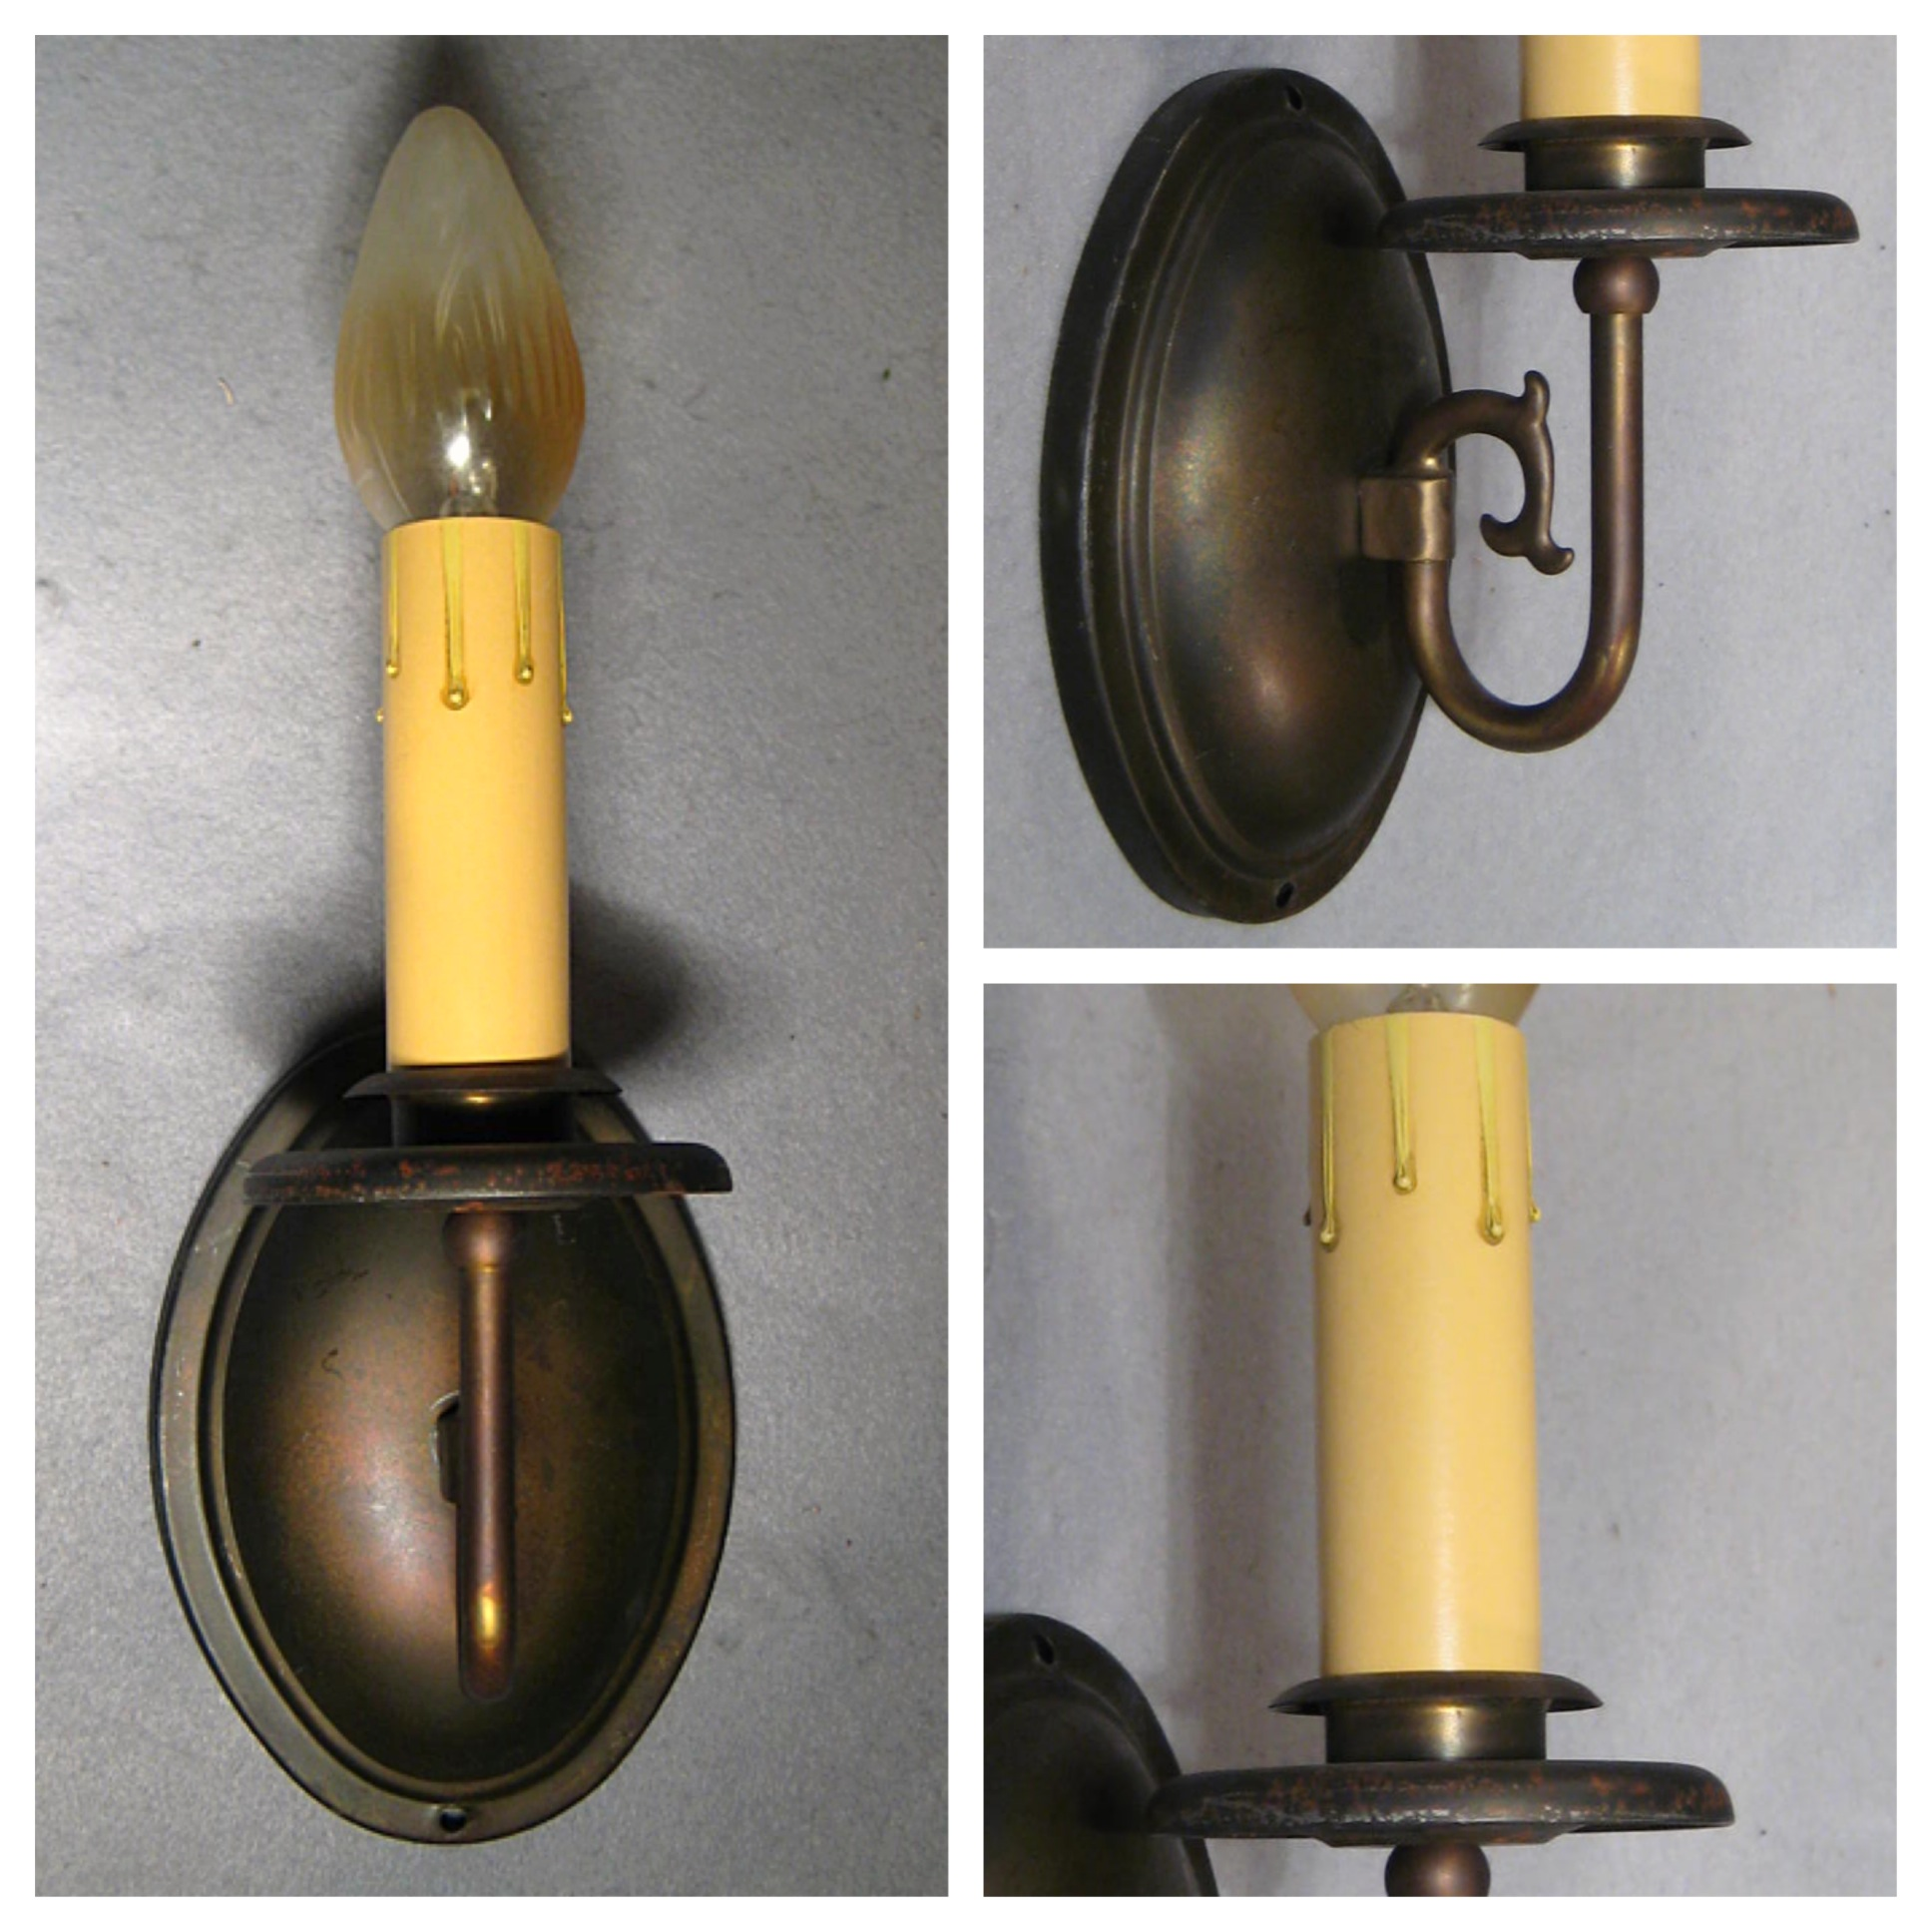 A7916 Single Candle Wall Sconce Bogart Bremmer Bradley Antiques